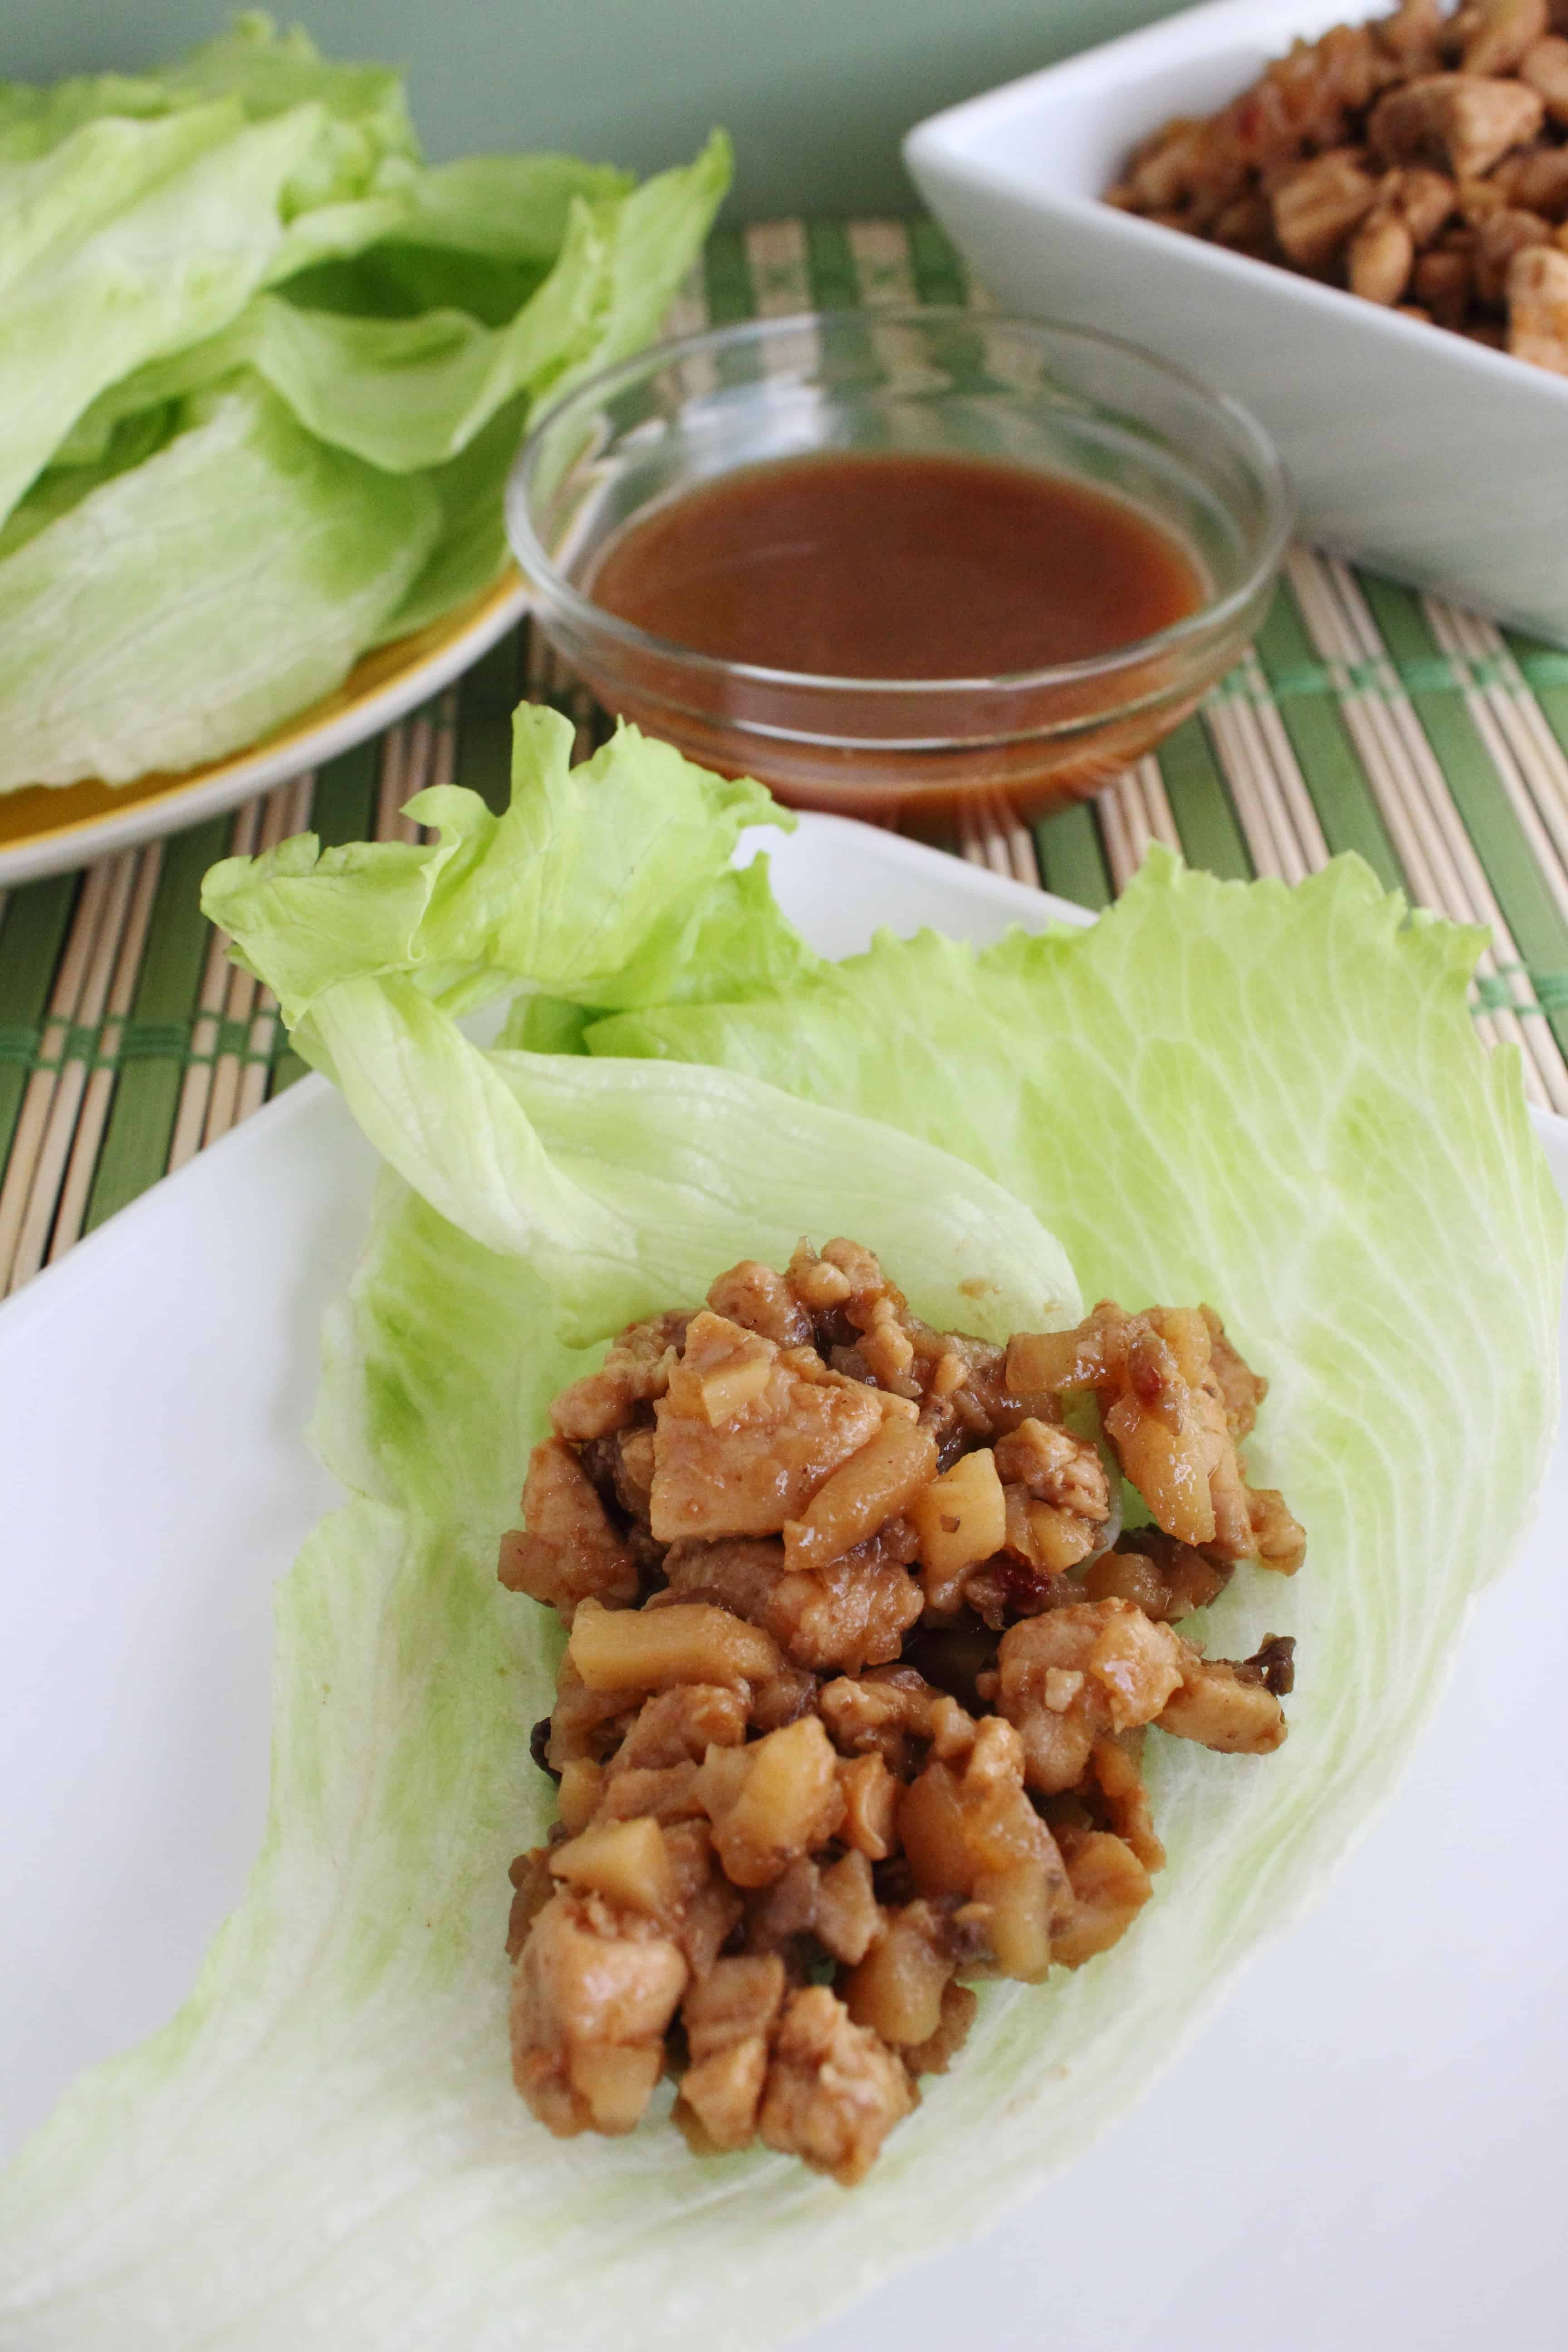 Copy Cat PF Changs Lettuce Wraps